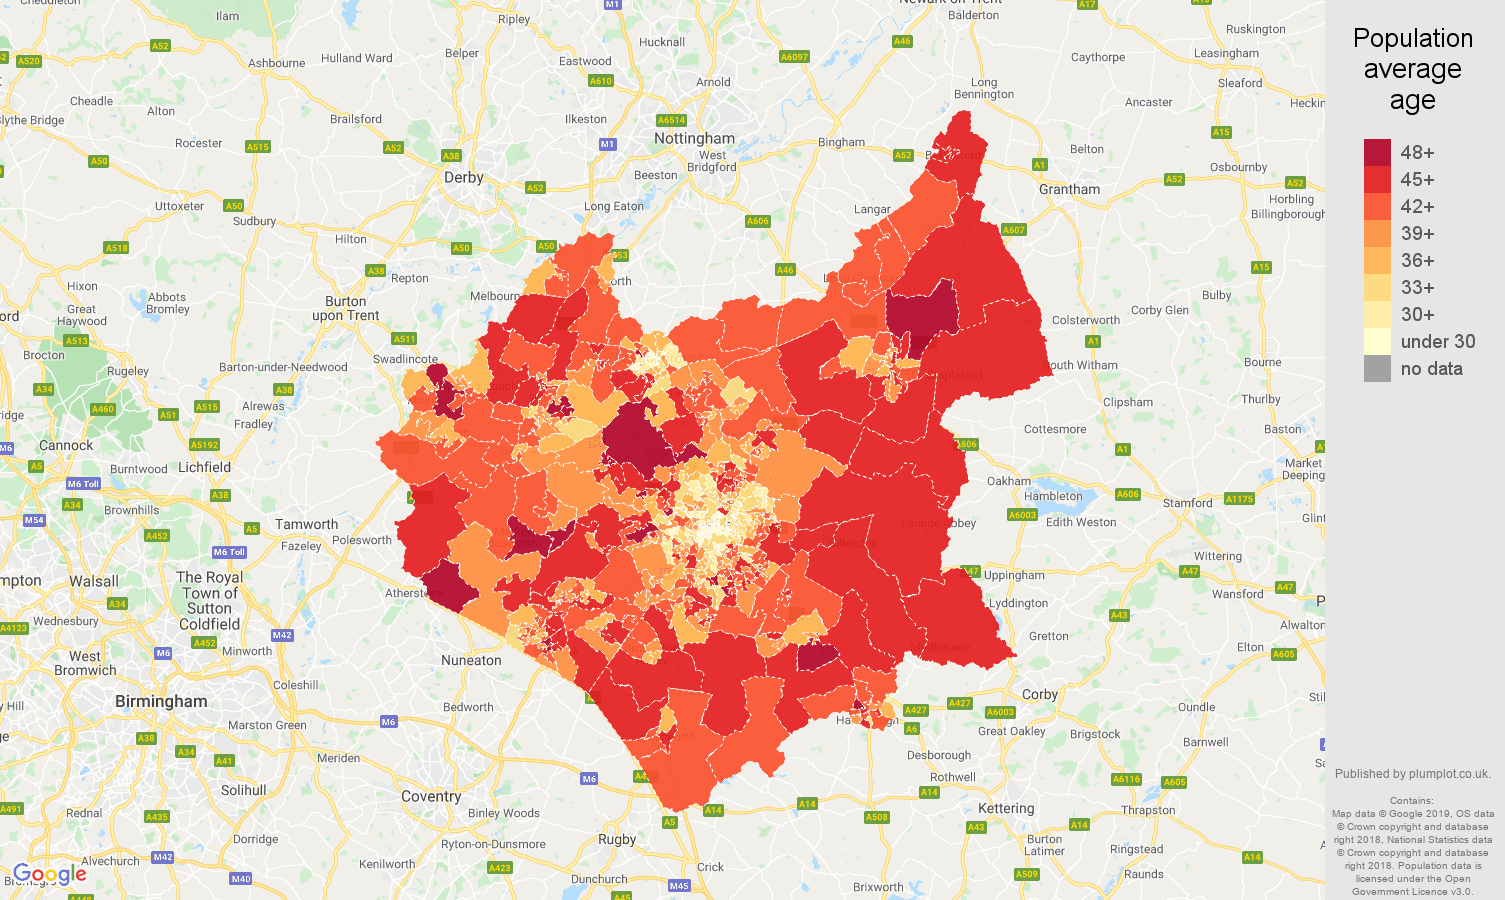 Leicestershire population average age map